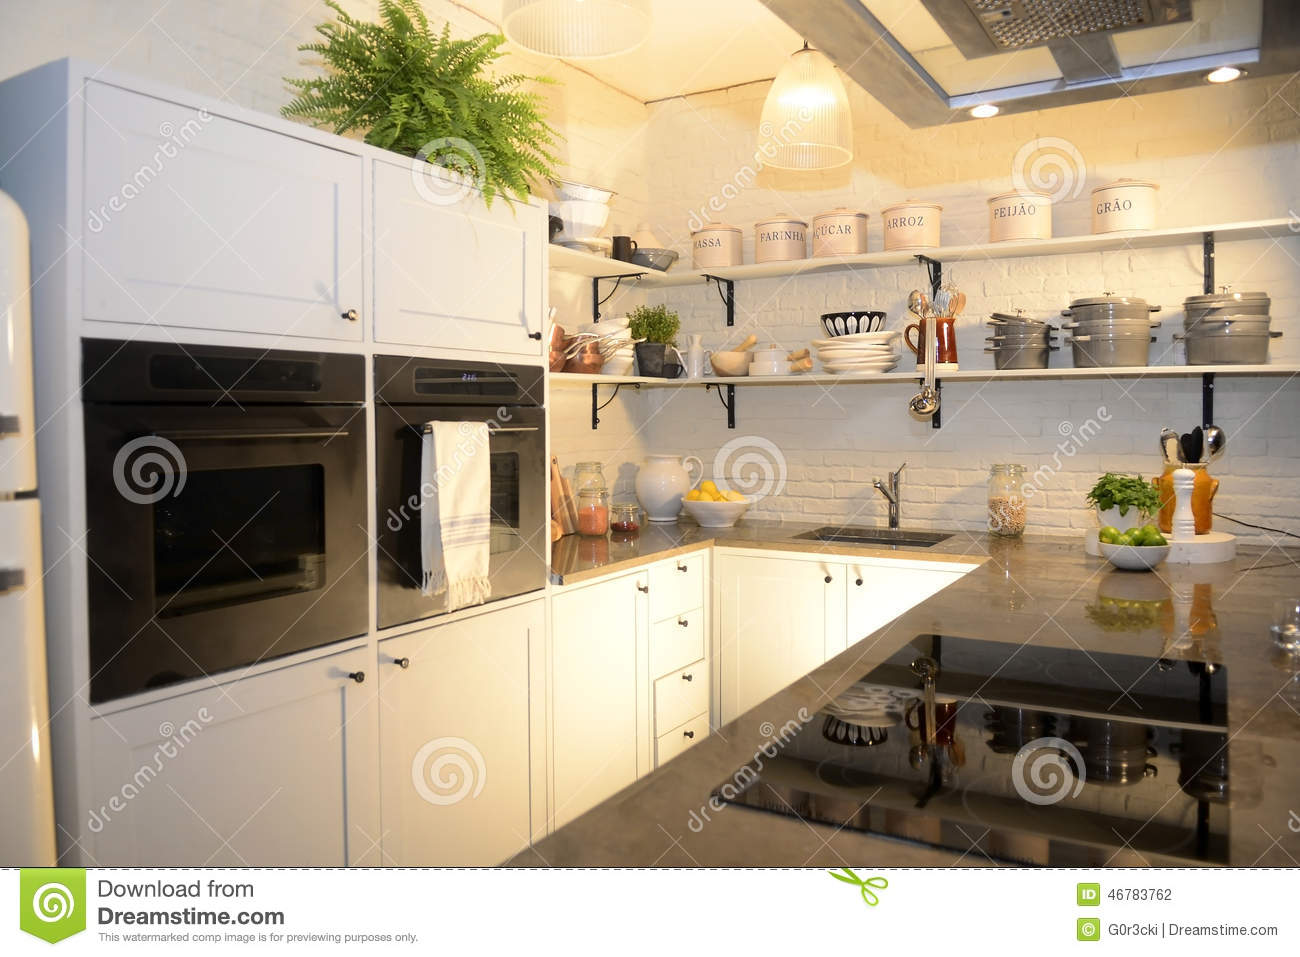 Belle cuisine blanche moderne photo stock image 46783762 for Belle cuisine moderne